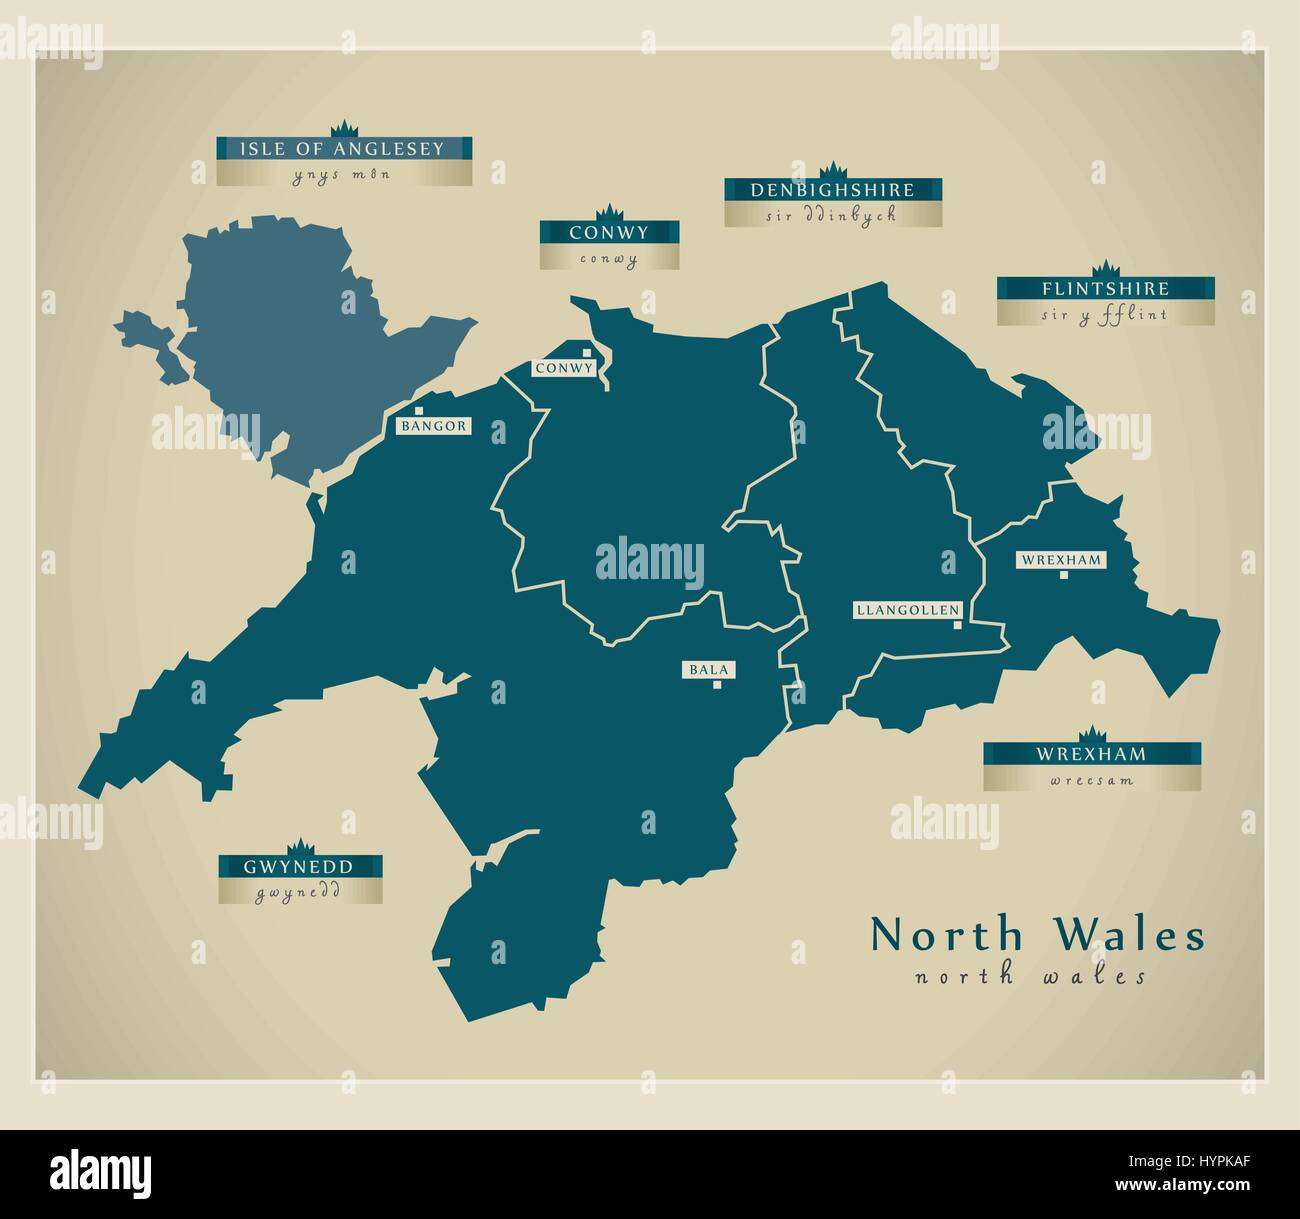 Detailed Map Of Wales Uk.Modern Map North Wales Uk Stock Vector Art Illustration Vector